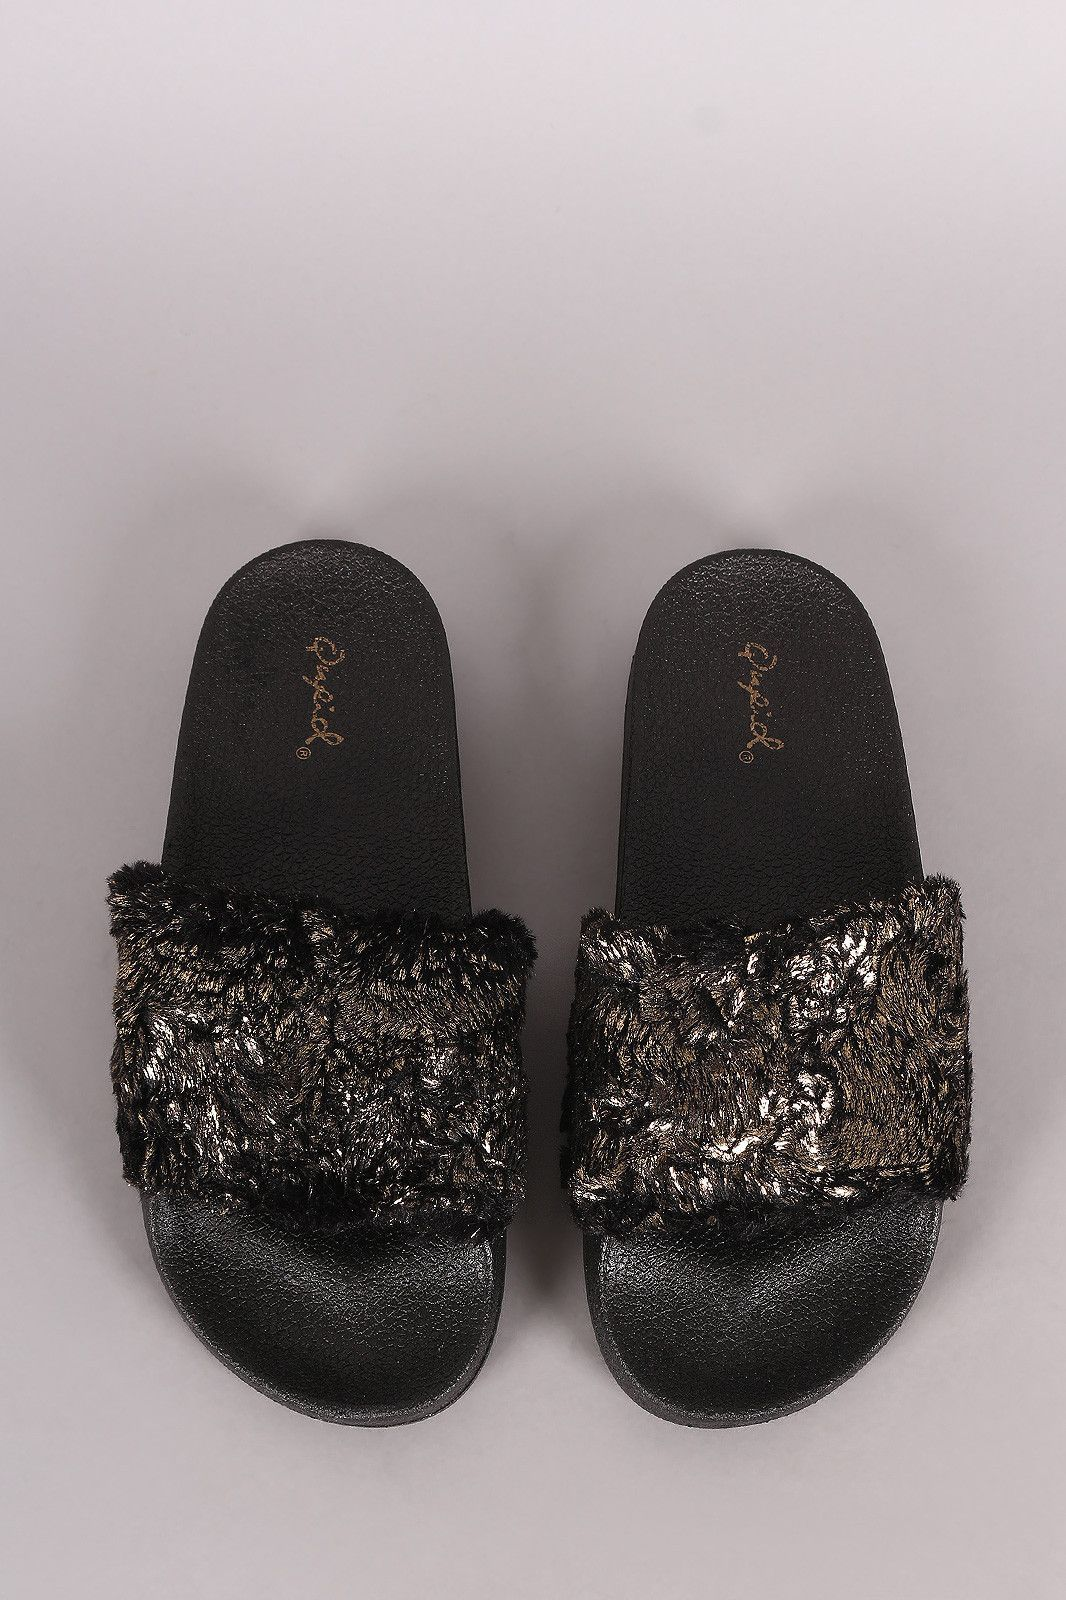 9d7336424e0 Qupid Metallic Faux Fur Slide Sandal. These slide sandals feature a wide  band across vamp with metallic accent faux fur trim finish and molded  foodbed.